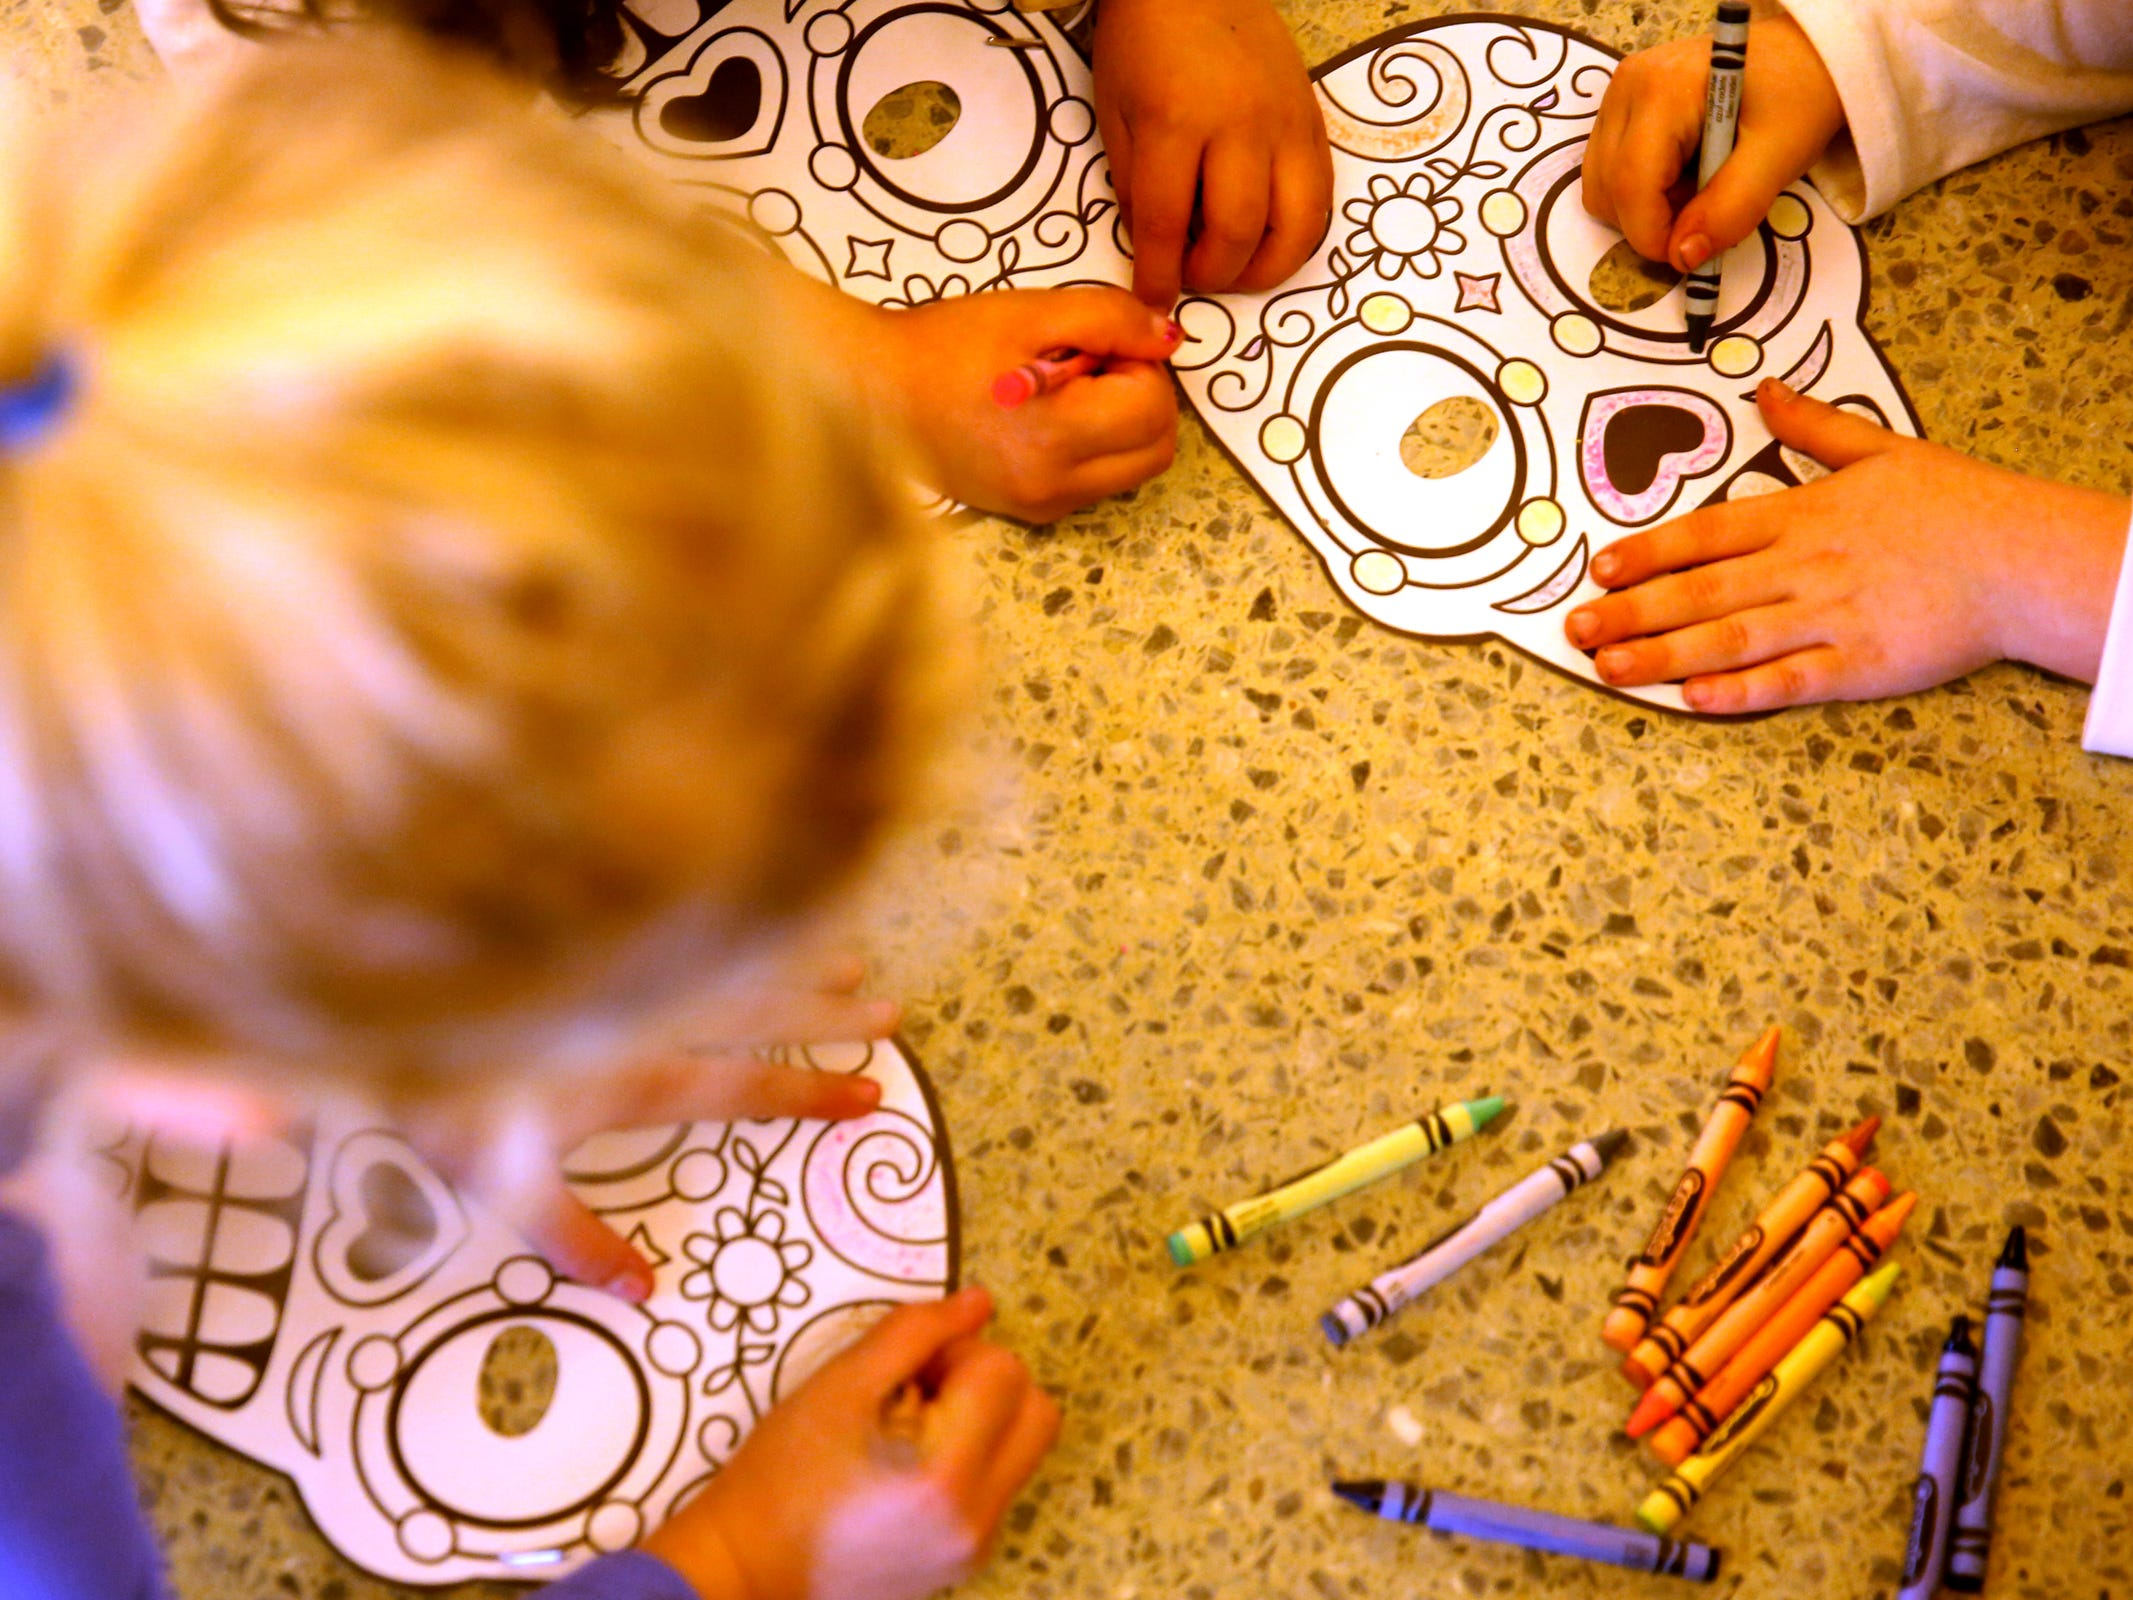 Children color decorated skulls, part of the Dia de los Muertos holiday, during Hispanic Heritage Day at the Oregon State Capitol on Saturday, Oct. 20, 2018.